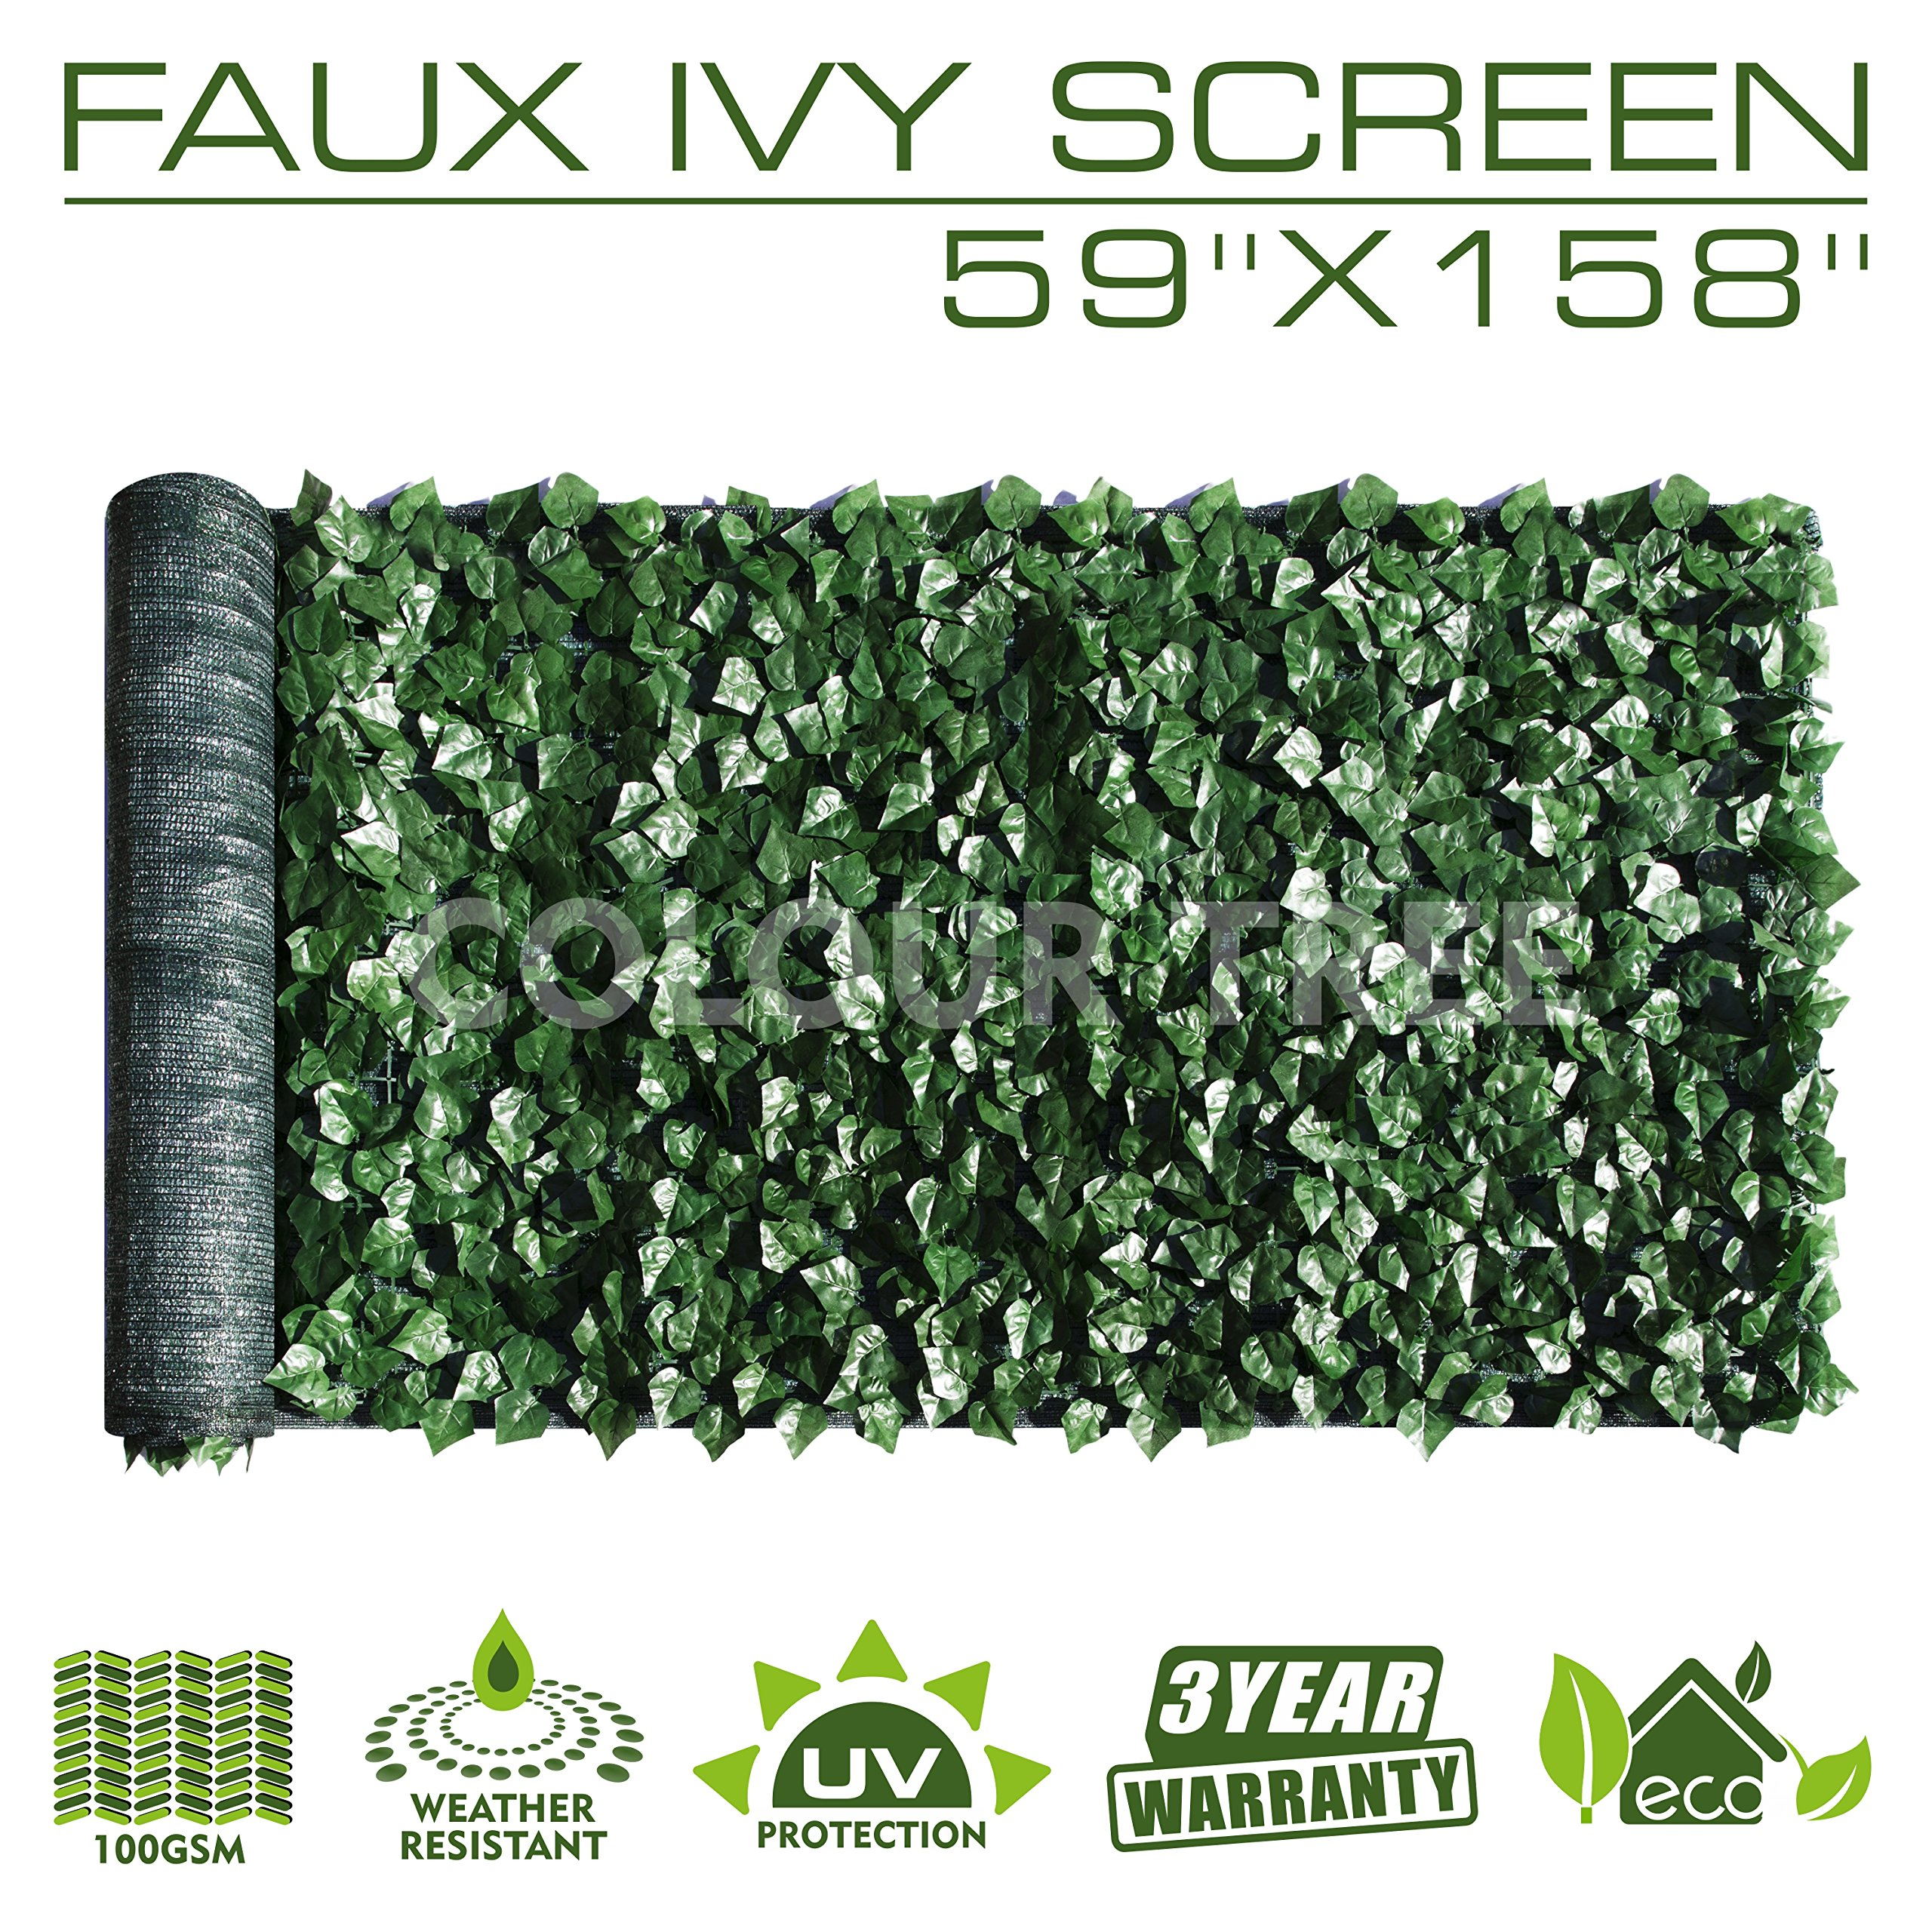 ColourTree 59'' x 158'' Artificial Hedges Faux Ivy Leaves Fence Privacy Screen Panels  Decorative Trellis - Mesh Backing - 3 Years Full Warranty